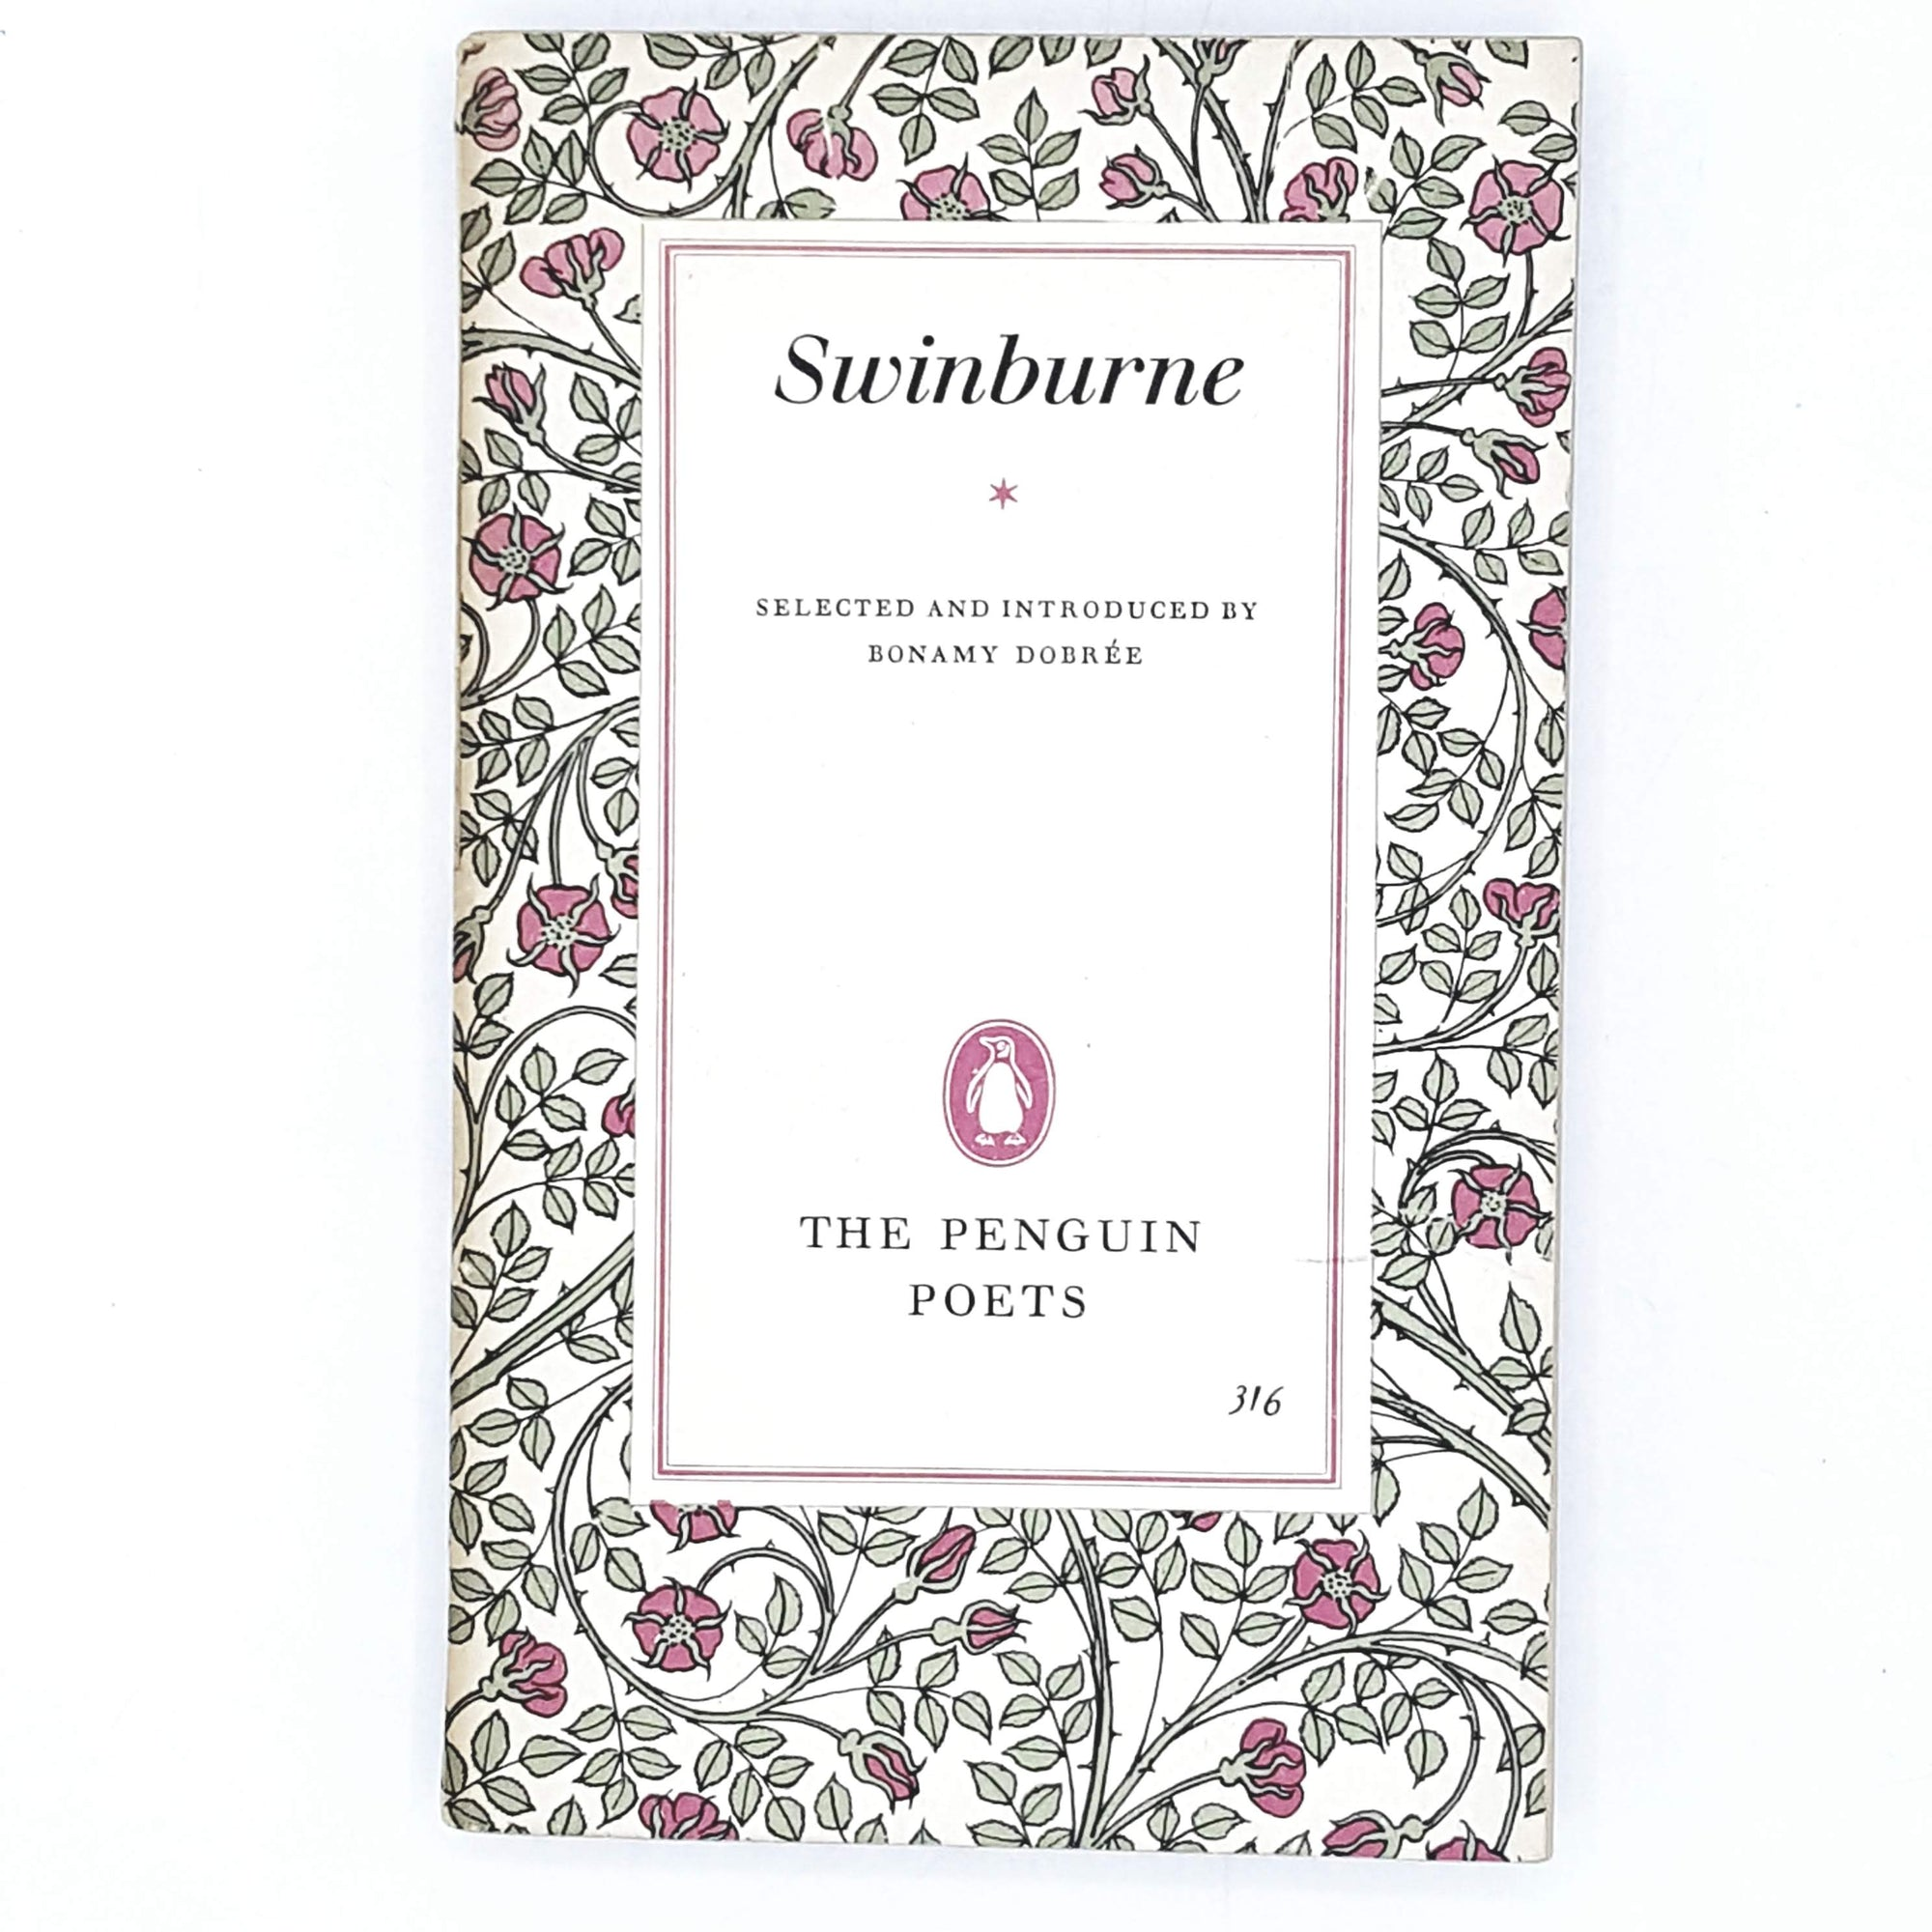 First Edition Penguin Swinburne 1961